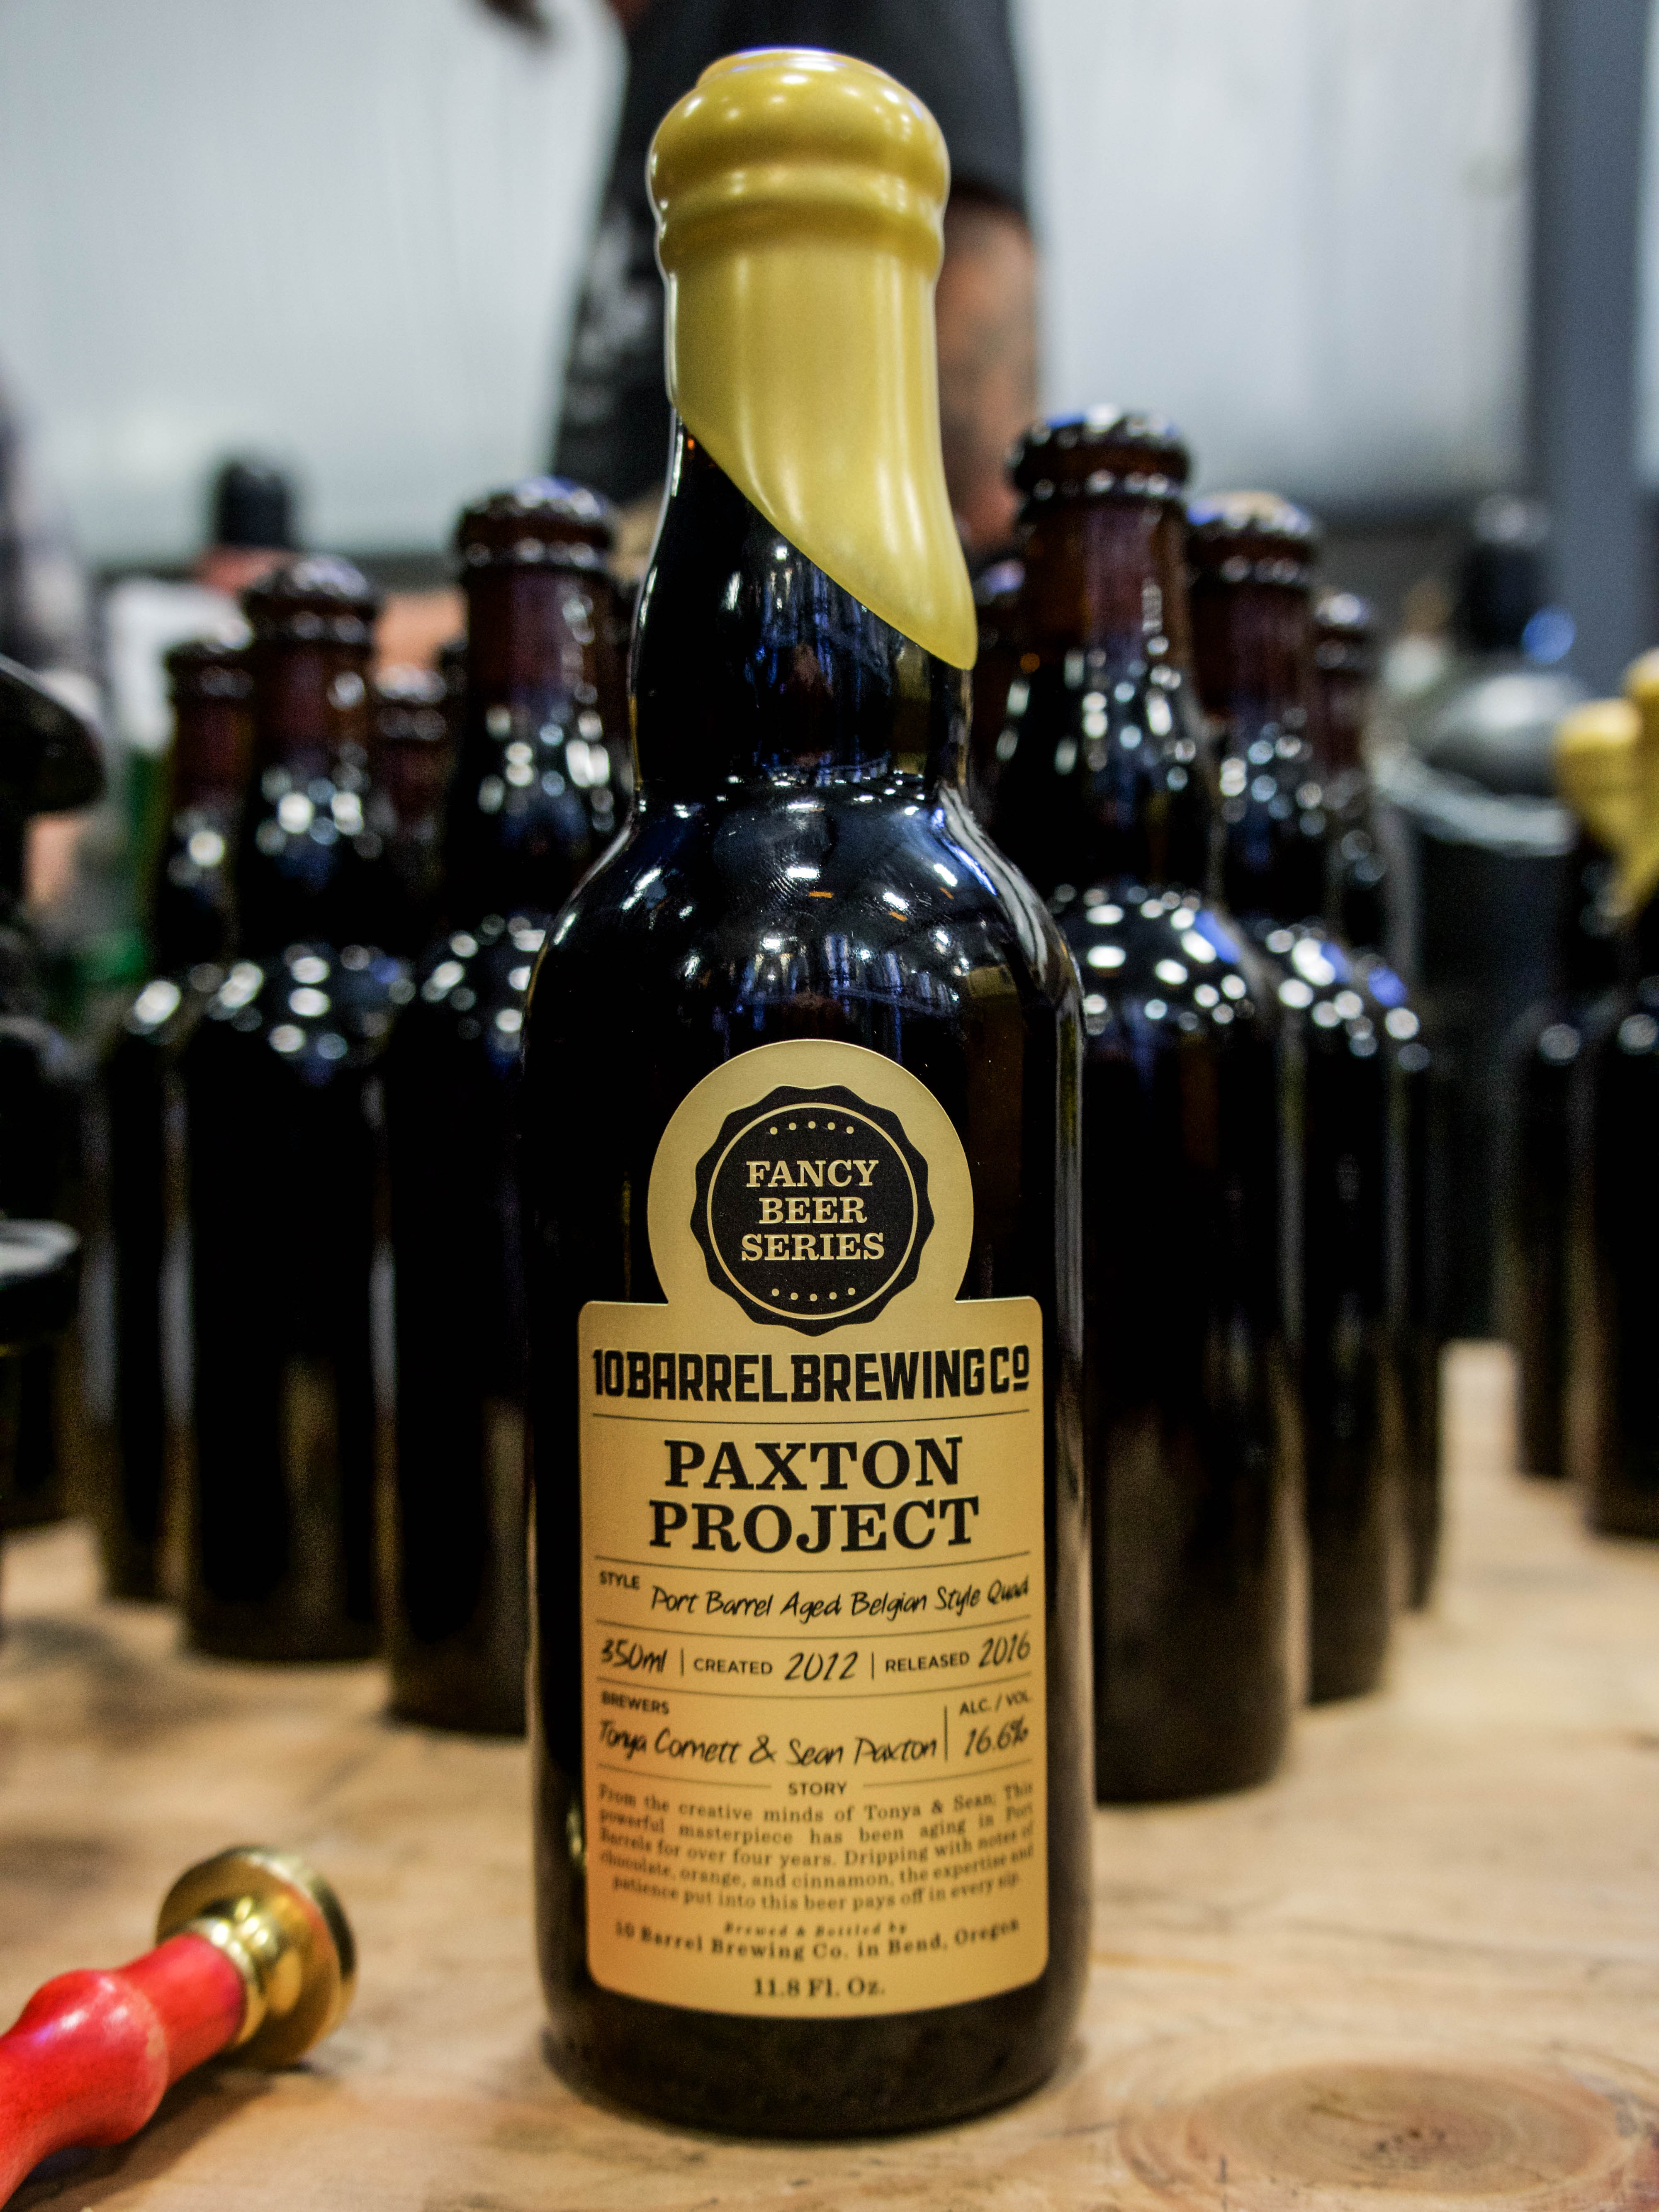 The Paxton Project, the second release from the Fancy Beer Series from 10 Barrel Brewing. (image courtesy of 10 Barrel Brewing)